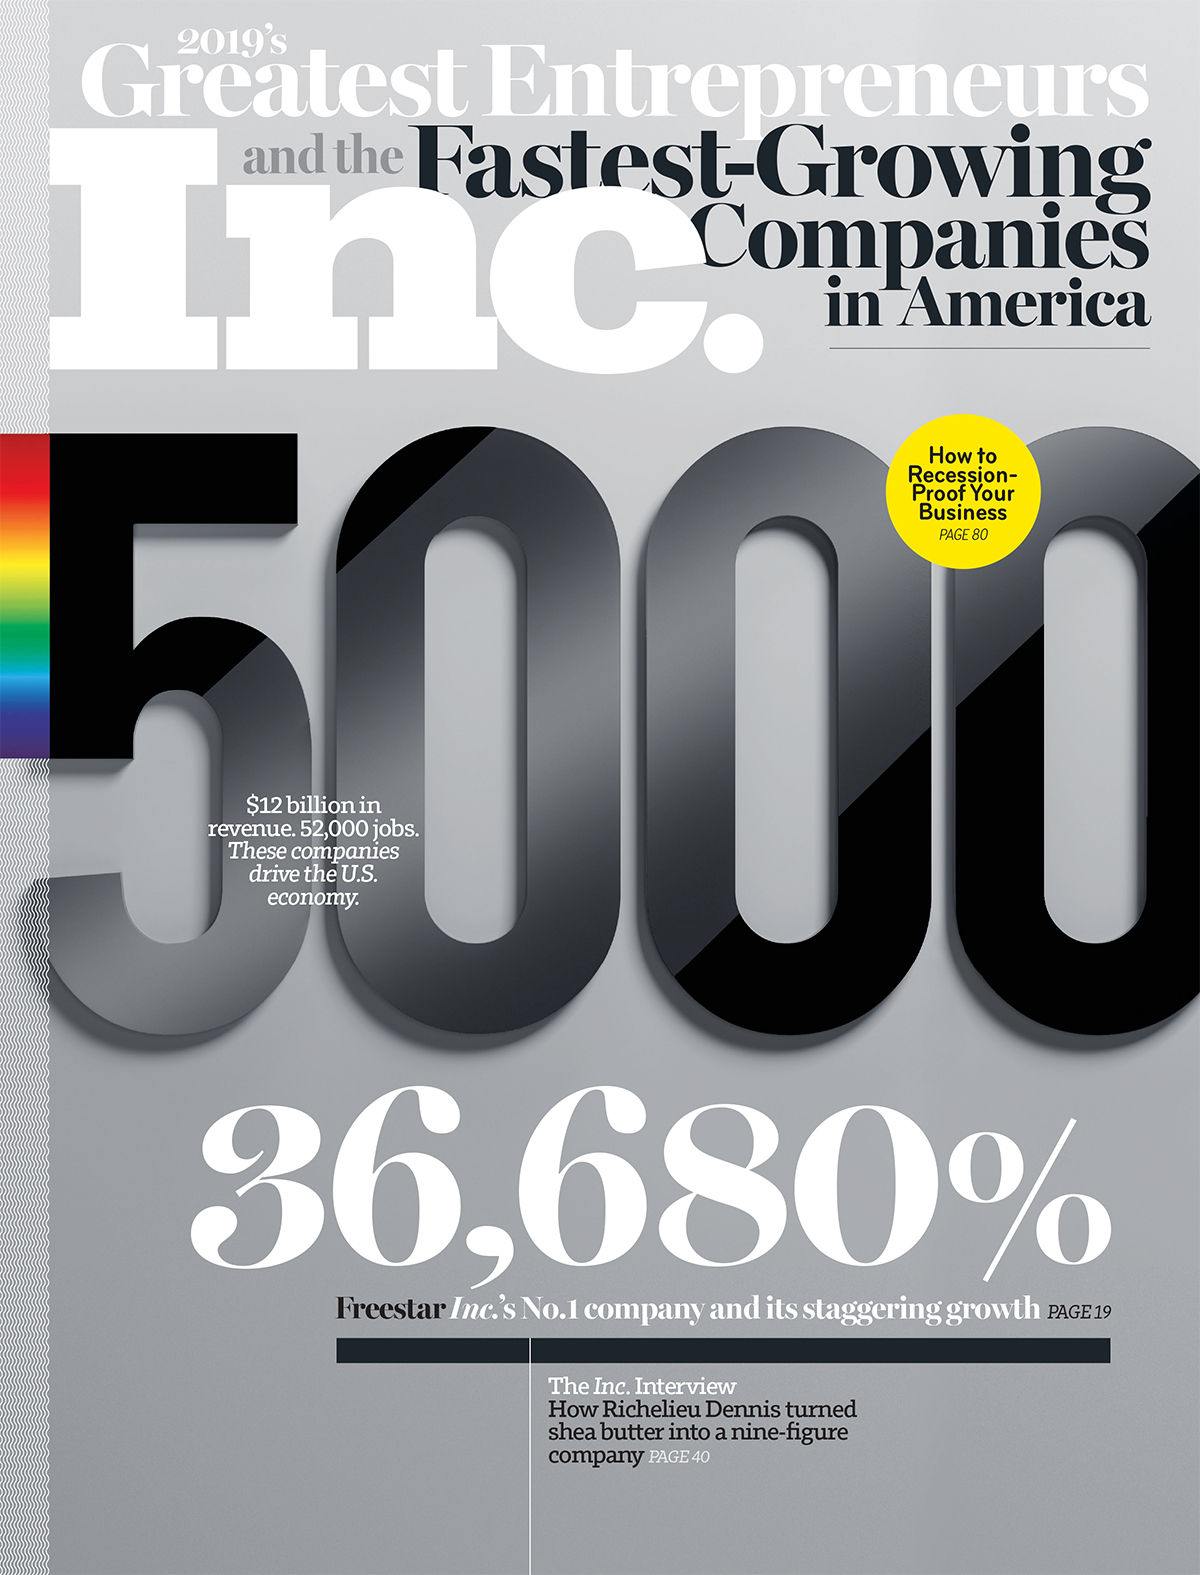 Fastest Growing Companies in America - Entire Productions